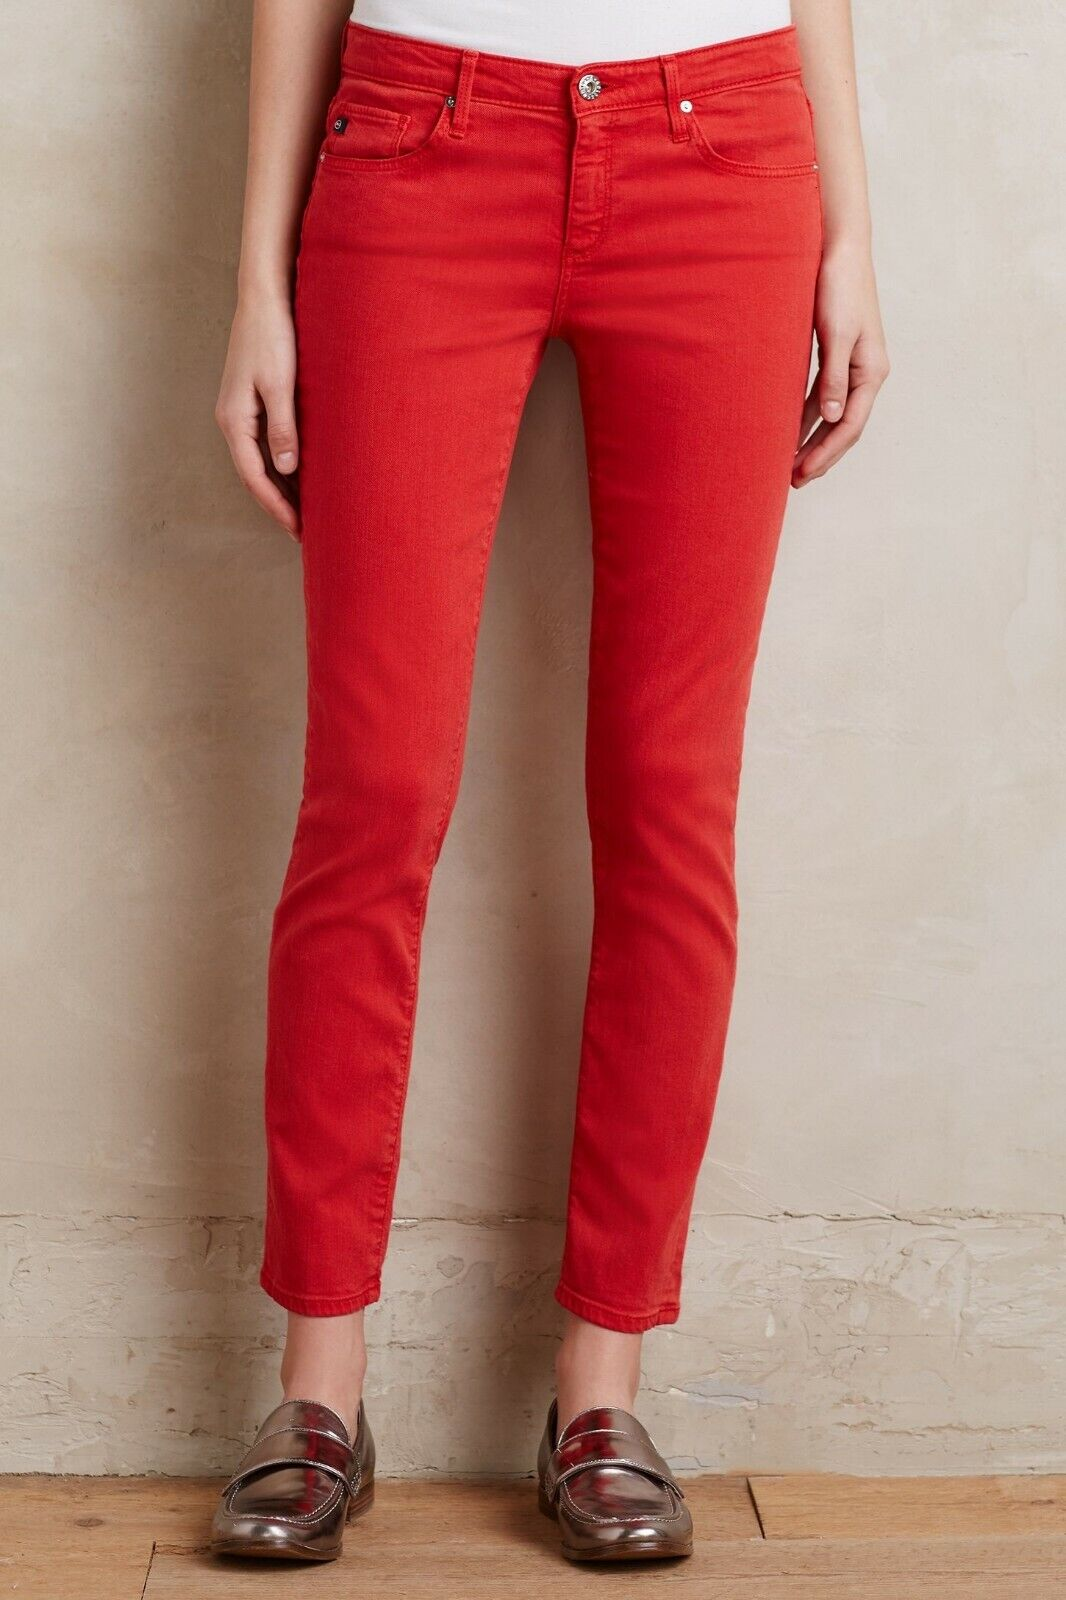 New AG Adriano goldschmied ANTHROPOLOGIE STEVIE Slim Straight Ankle JEANS Red 28